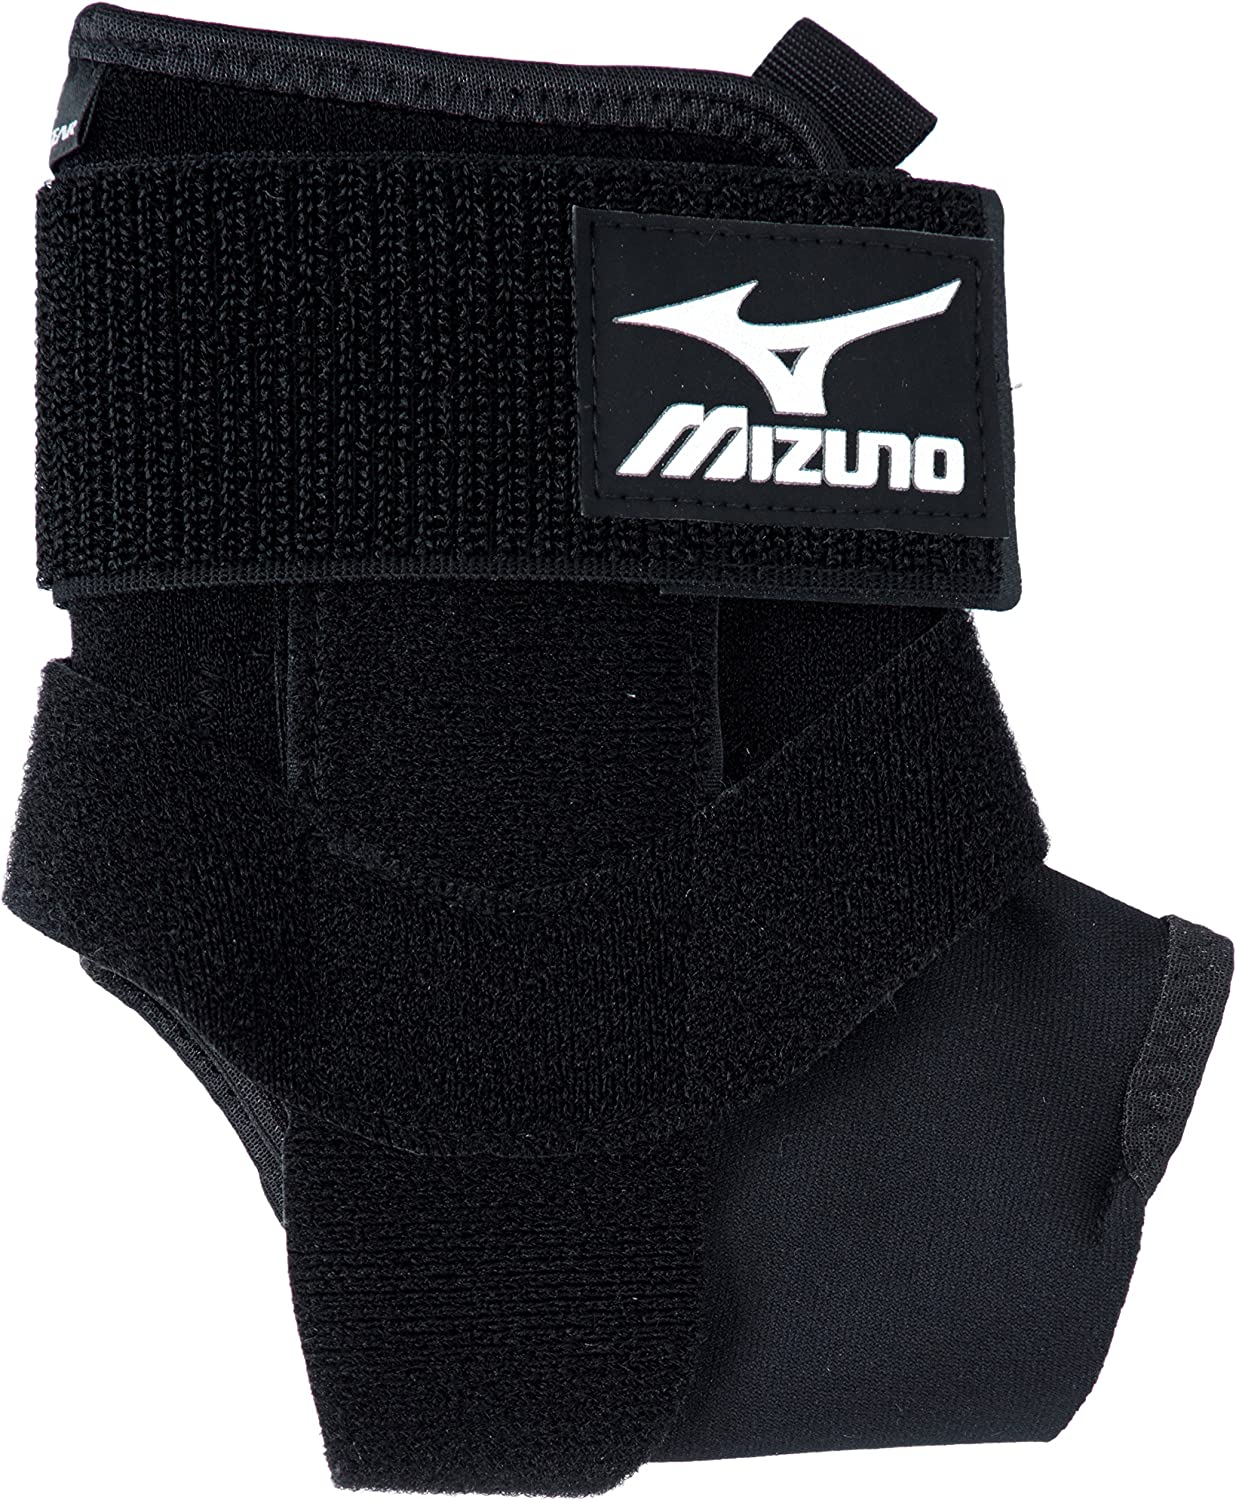 [Mizuno] bio Gear Supporter for Ankle (1 Sheets) Front Open LowCut Soft pad YShaped Belt Unisex K2JJ4A01 03 Black RL